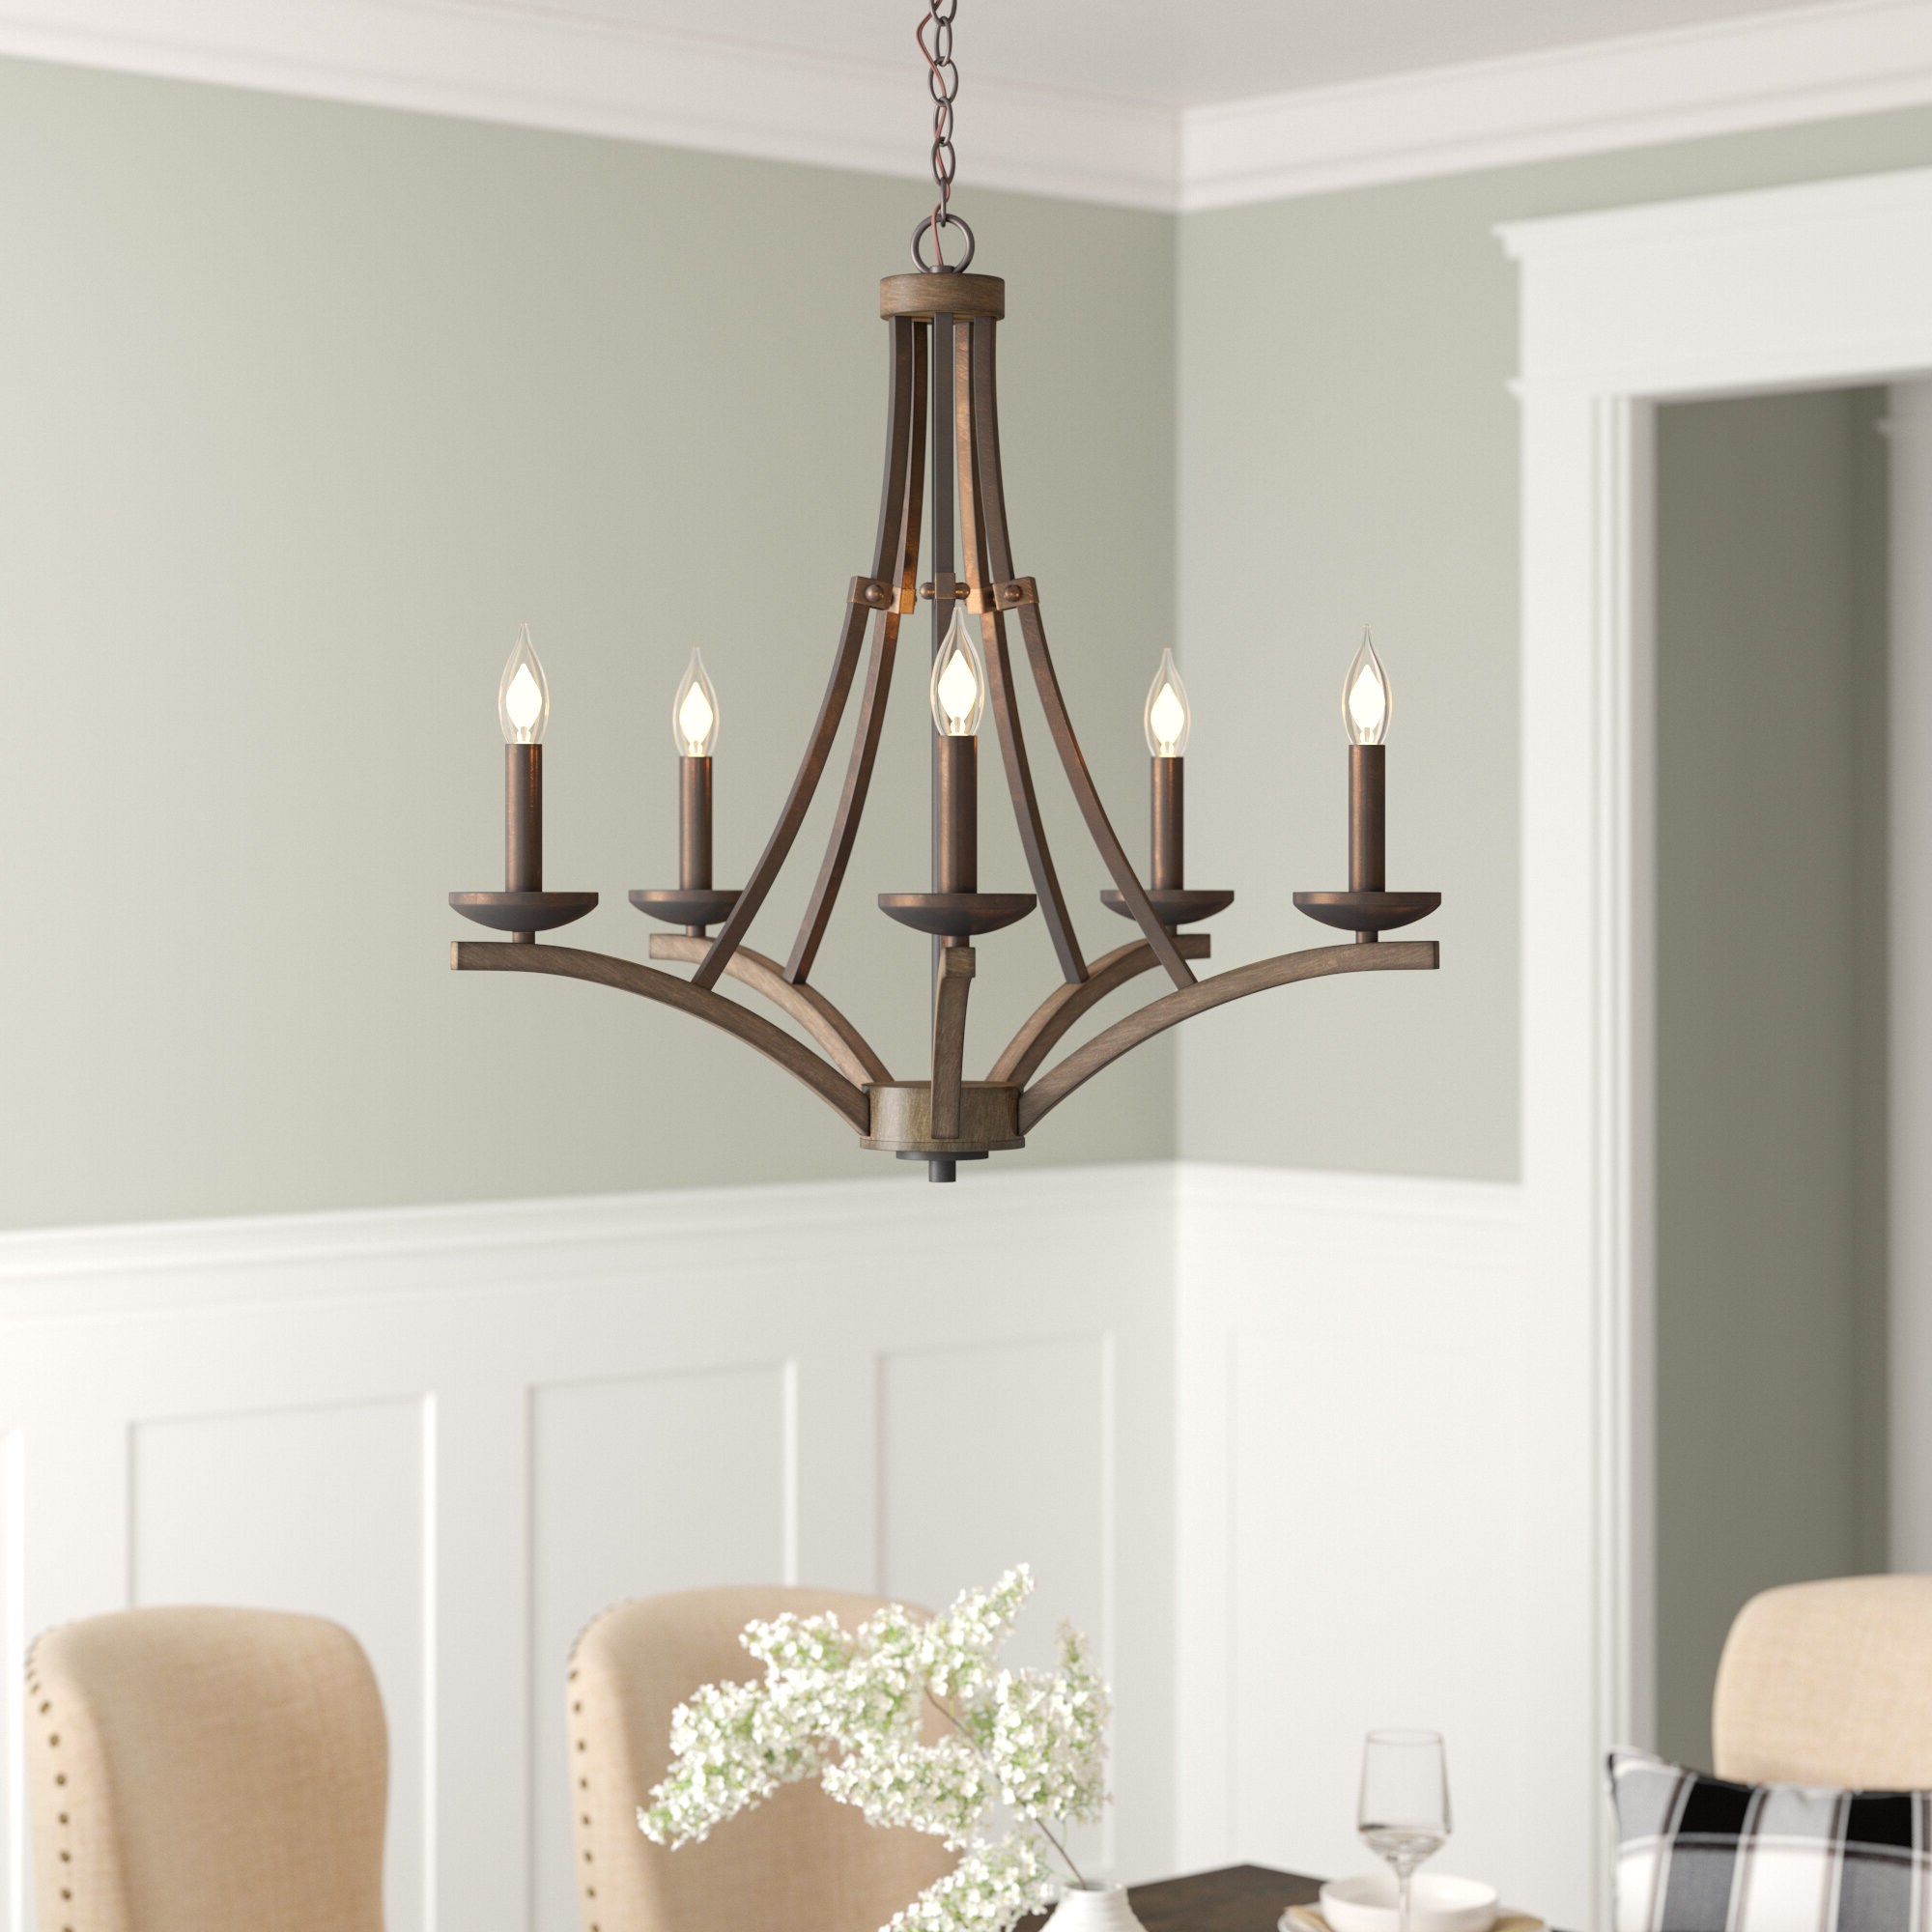 Wireman 5 Light Candle Style Chandelier Throughout 2019 Berger 5 Light Candle Style Chandeliers (View 20 of 20)